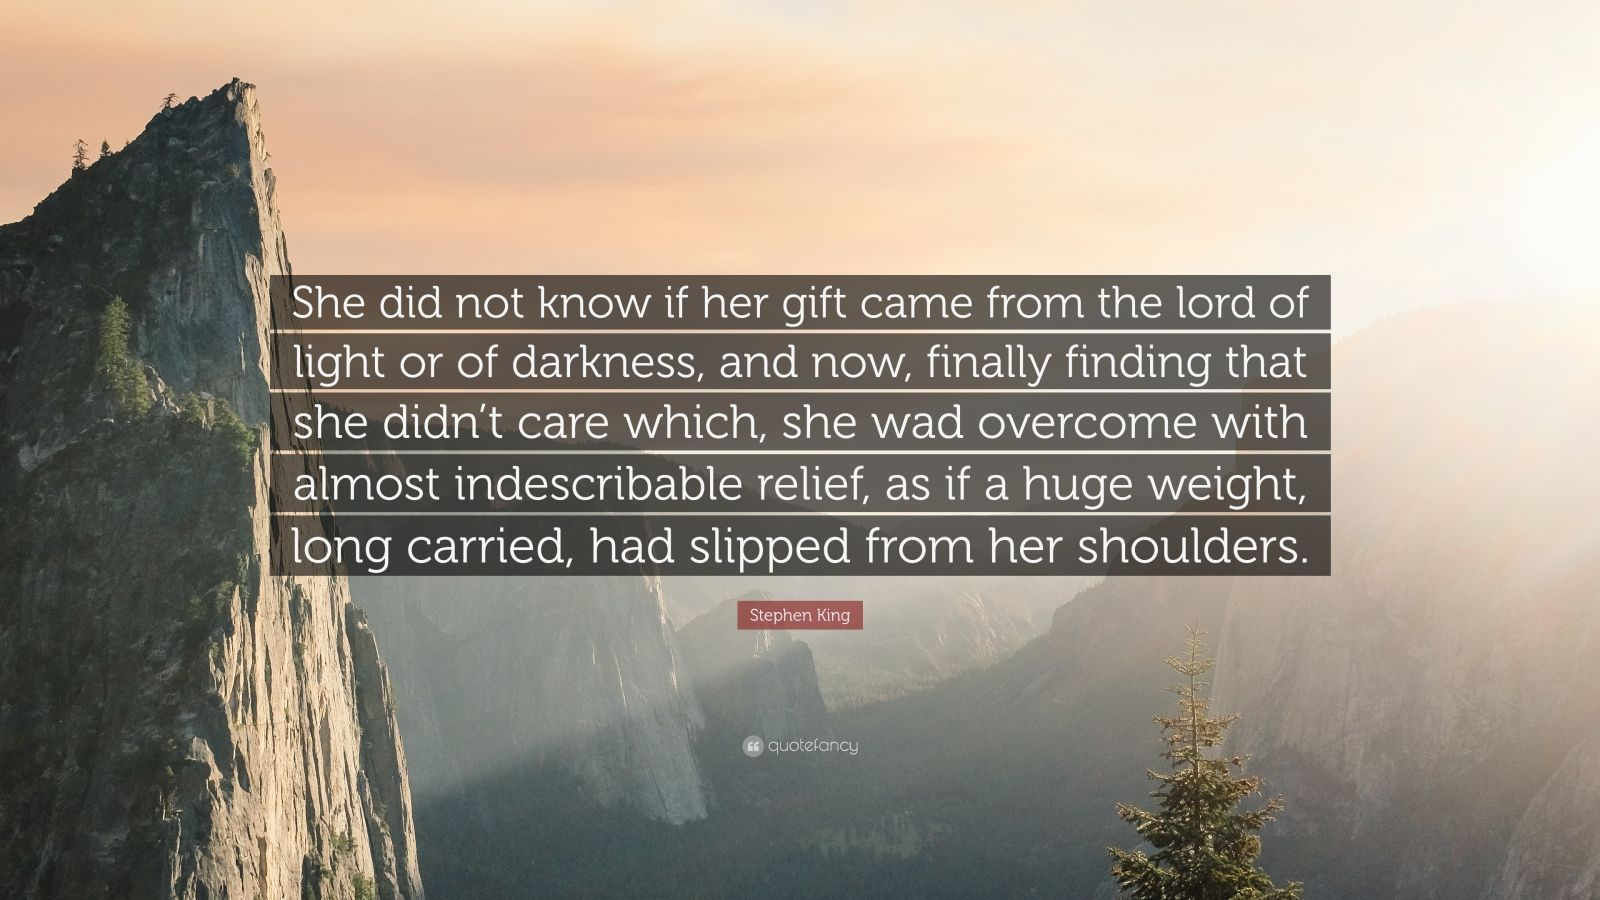 "Stephen King Quote: ""She did not know if her gift came from the lord of light or of darkness, and now, finally finding that she didn't care which, she wad overcome with almost indescribable relief, as if a huge weight, long carried, had slipped from her shoulders."""